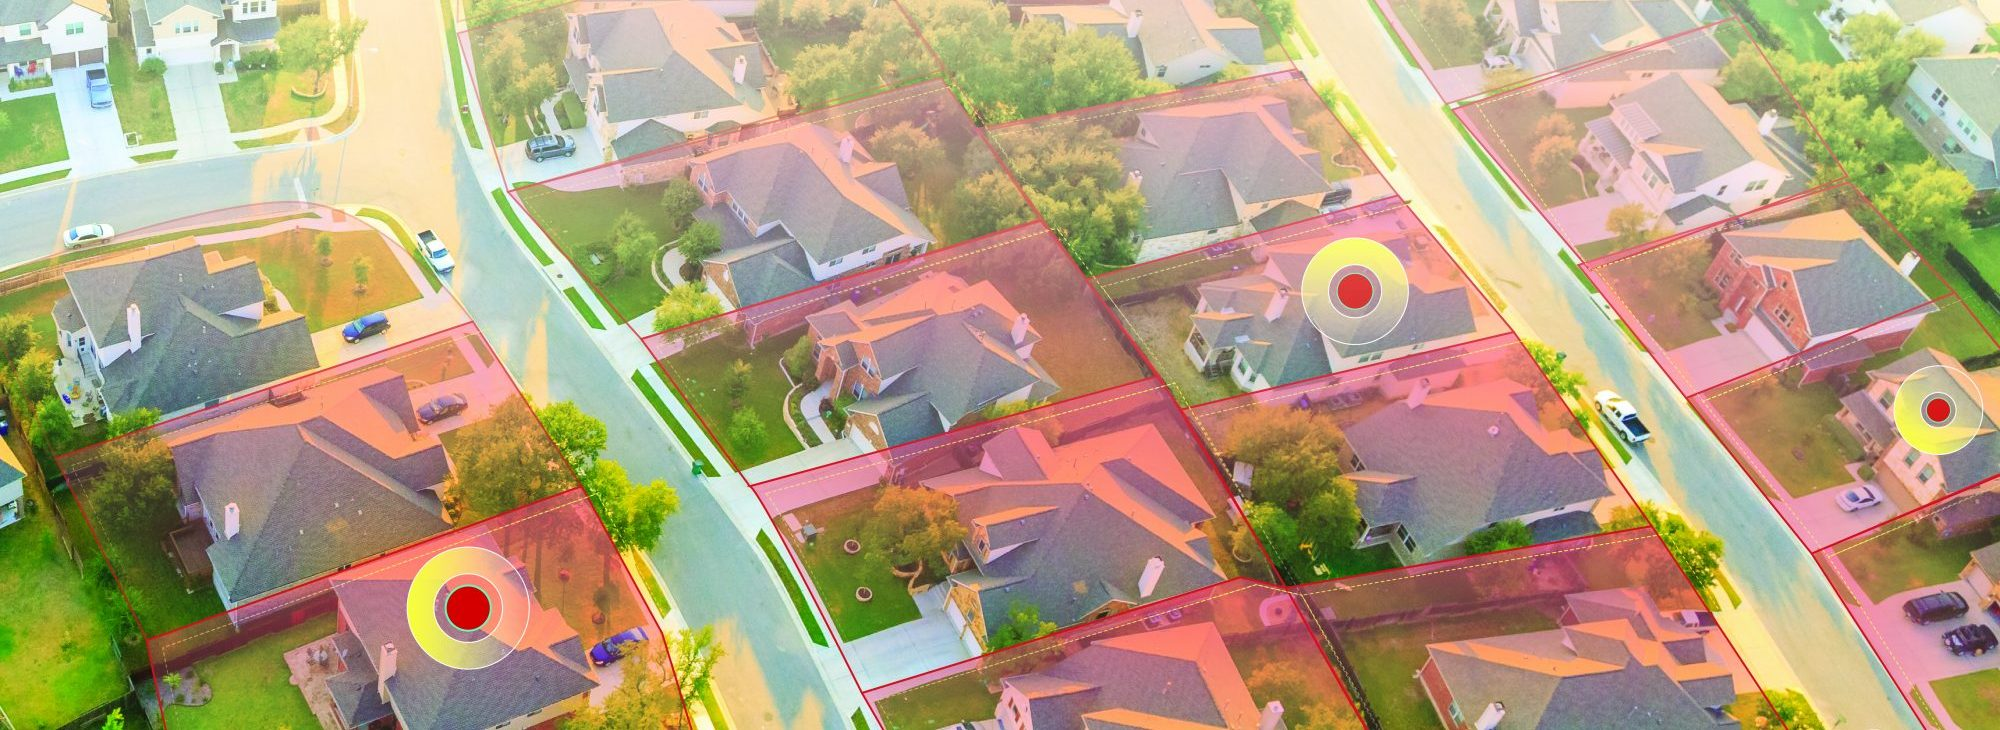 Parcel map overlay on houses showing GIS for government parcel land management